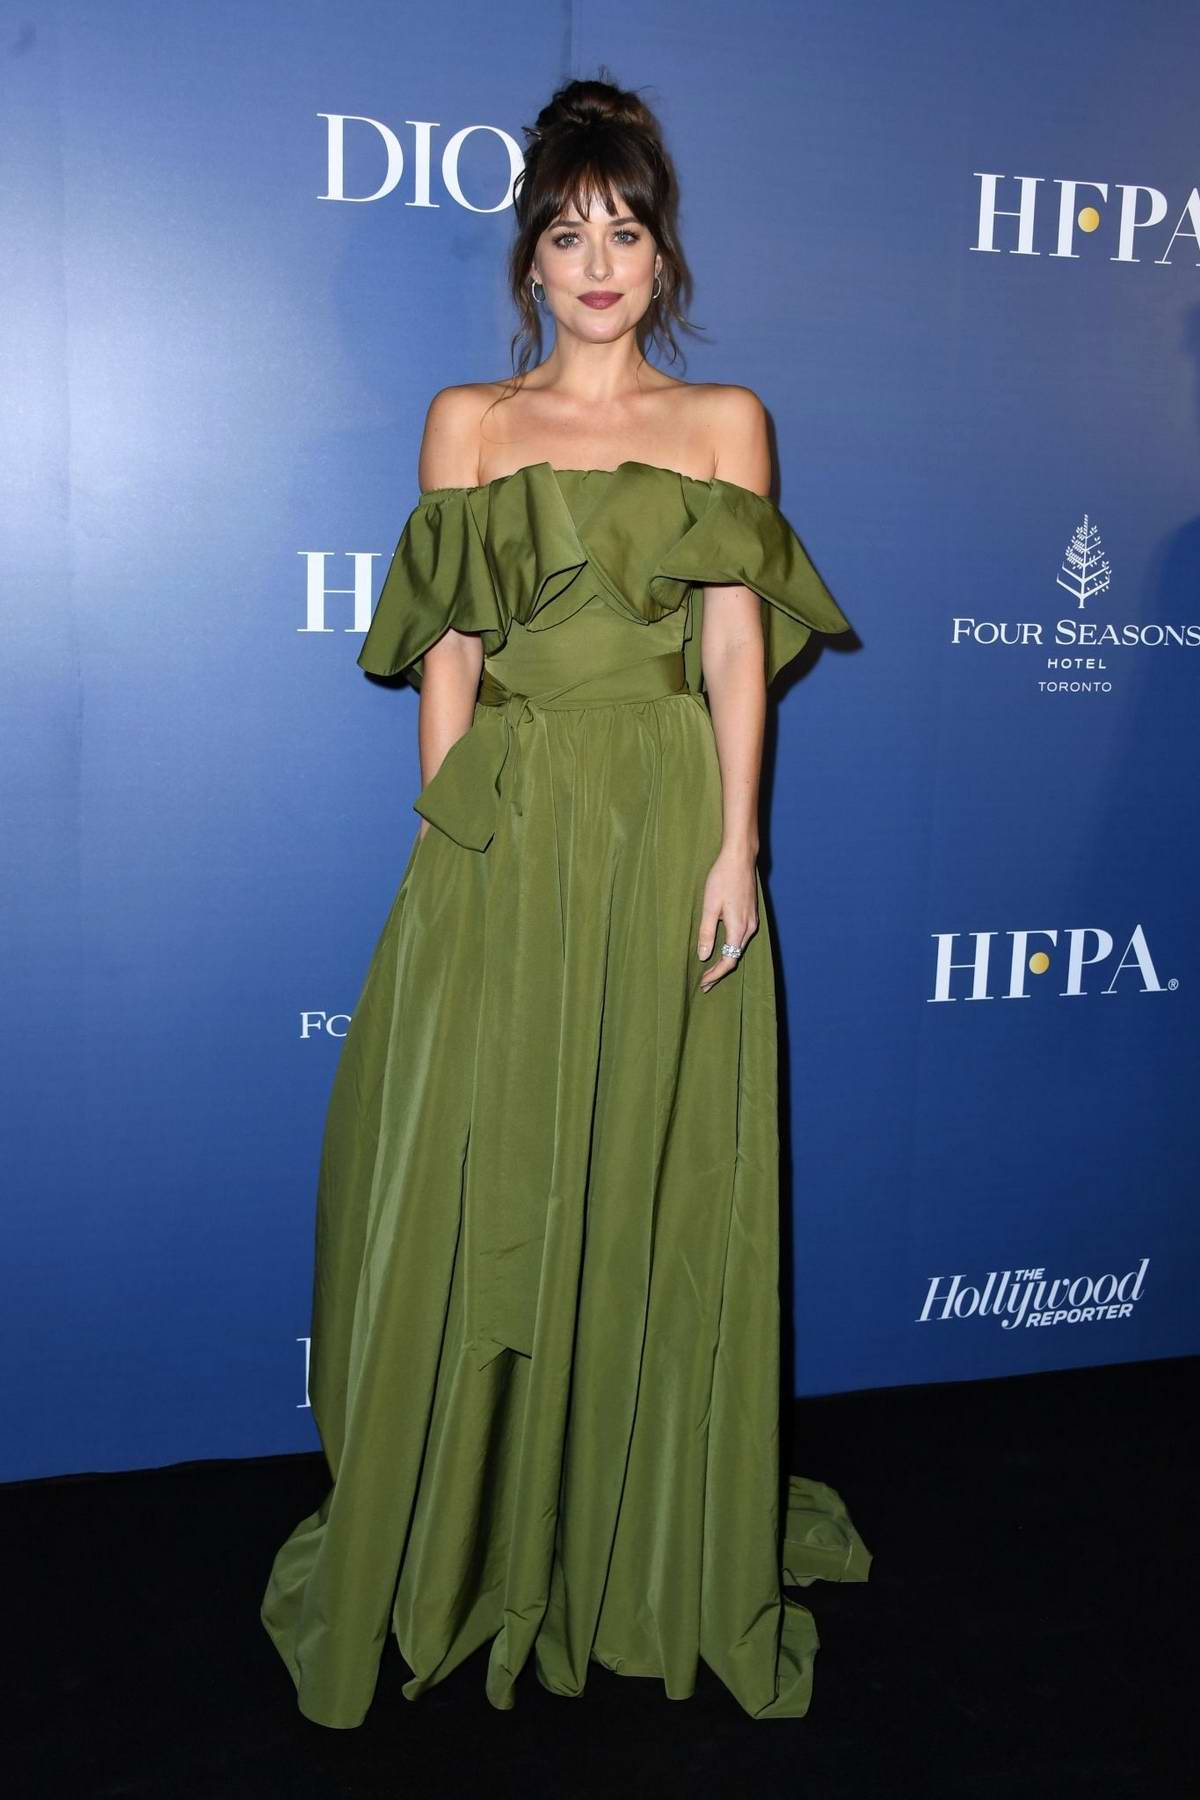 Dakota Johnson attends the Hollywood Reporter party during the 2019 Toronto International Film Festival in Toronto, Canada